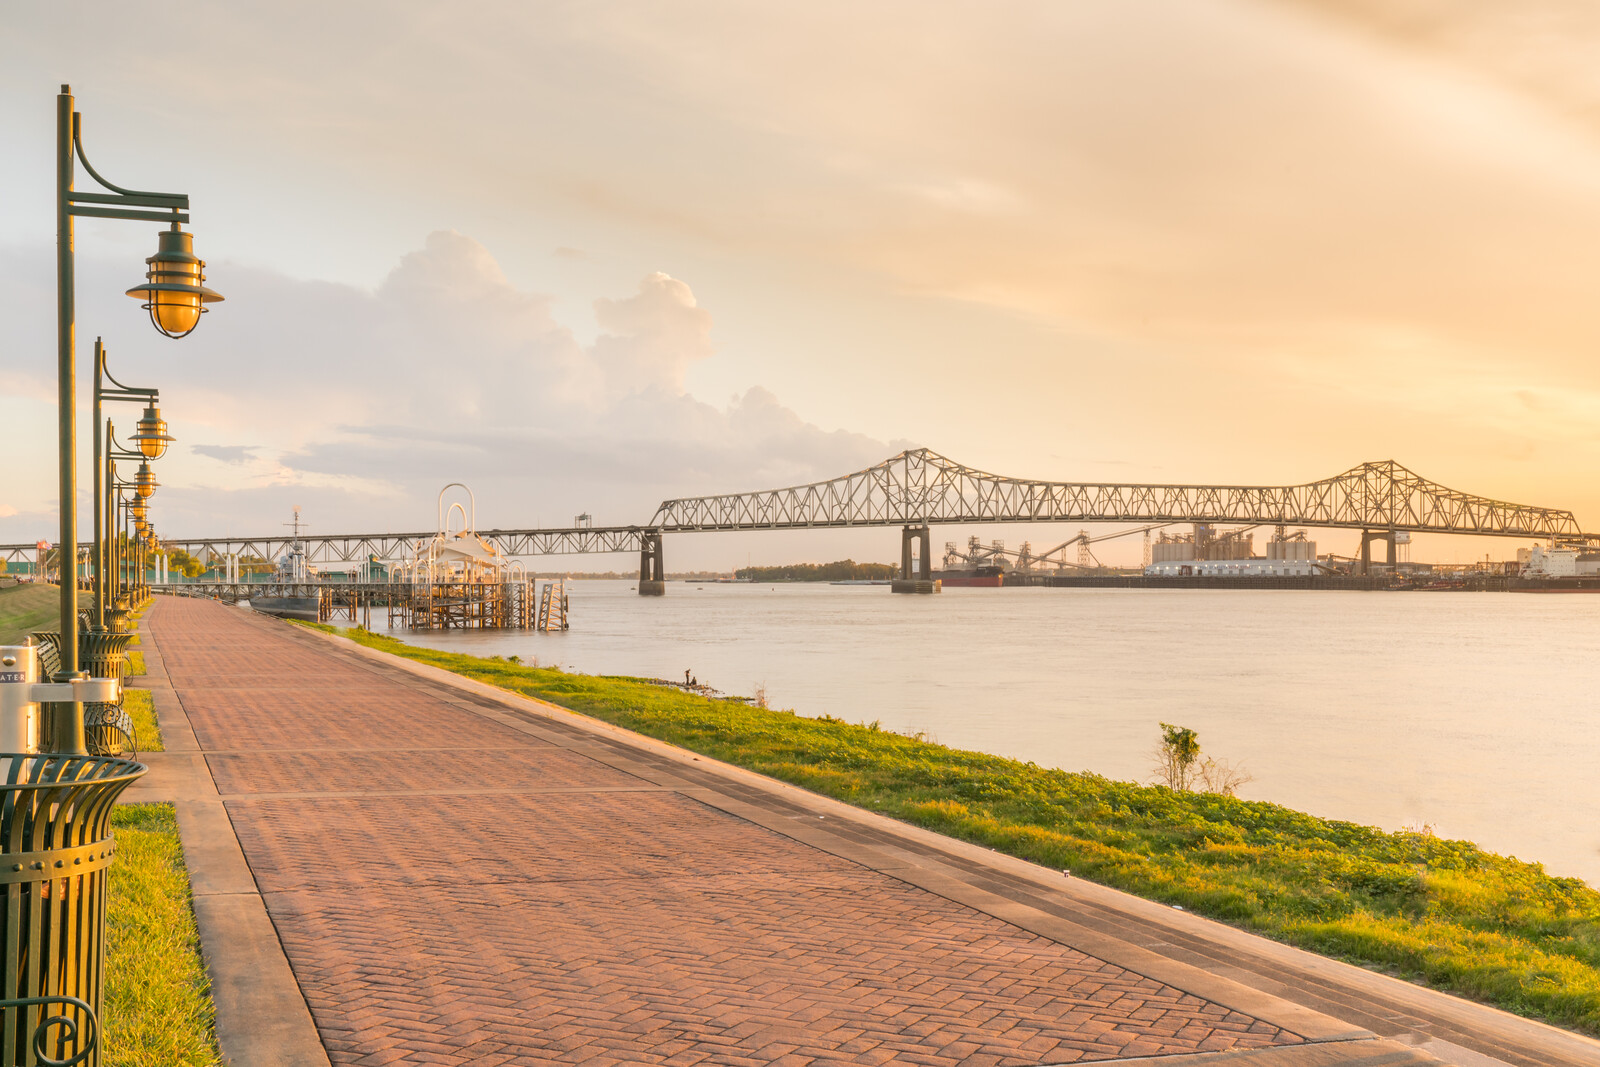 Walking path along the Mississippi river at sunrise in Baton Rouge, Louisiana